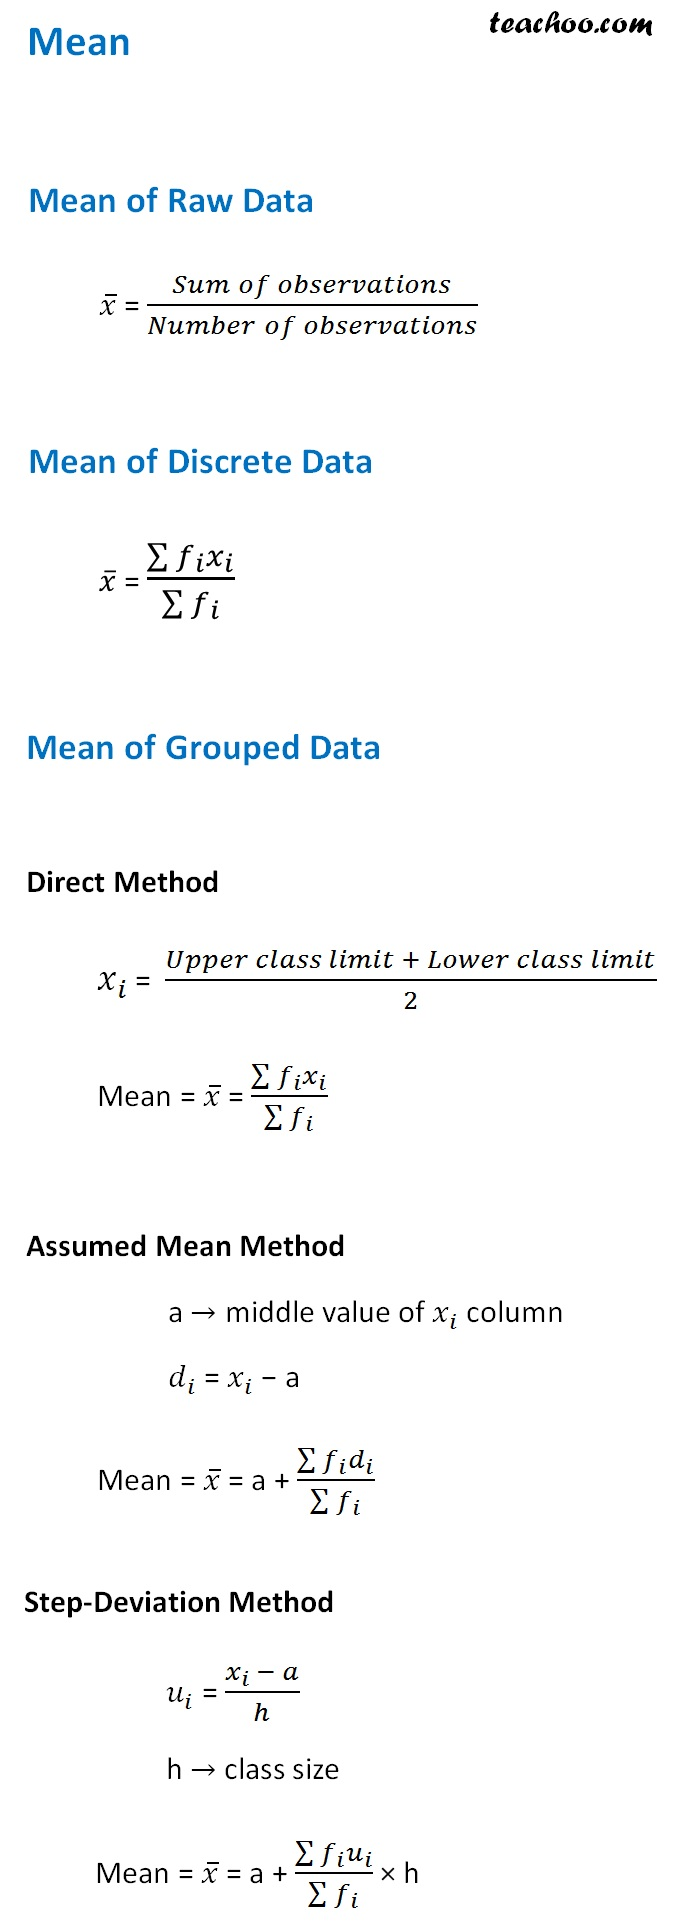 Mean of Raw, Discrete and Grouped Data.jpg